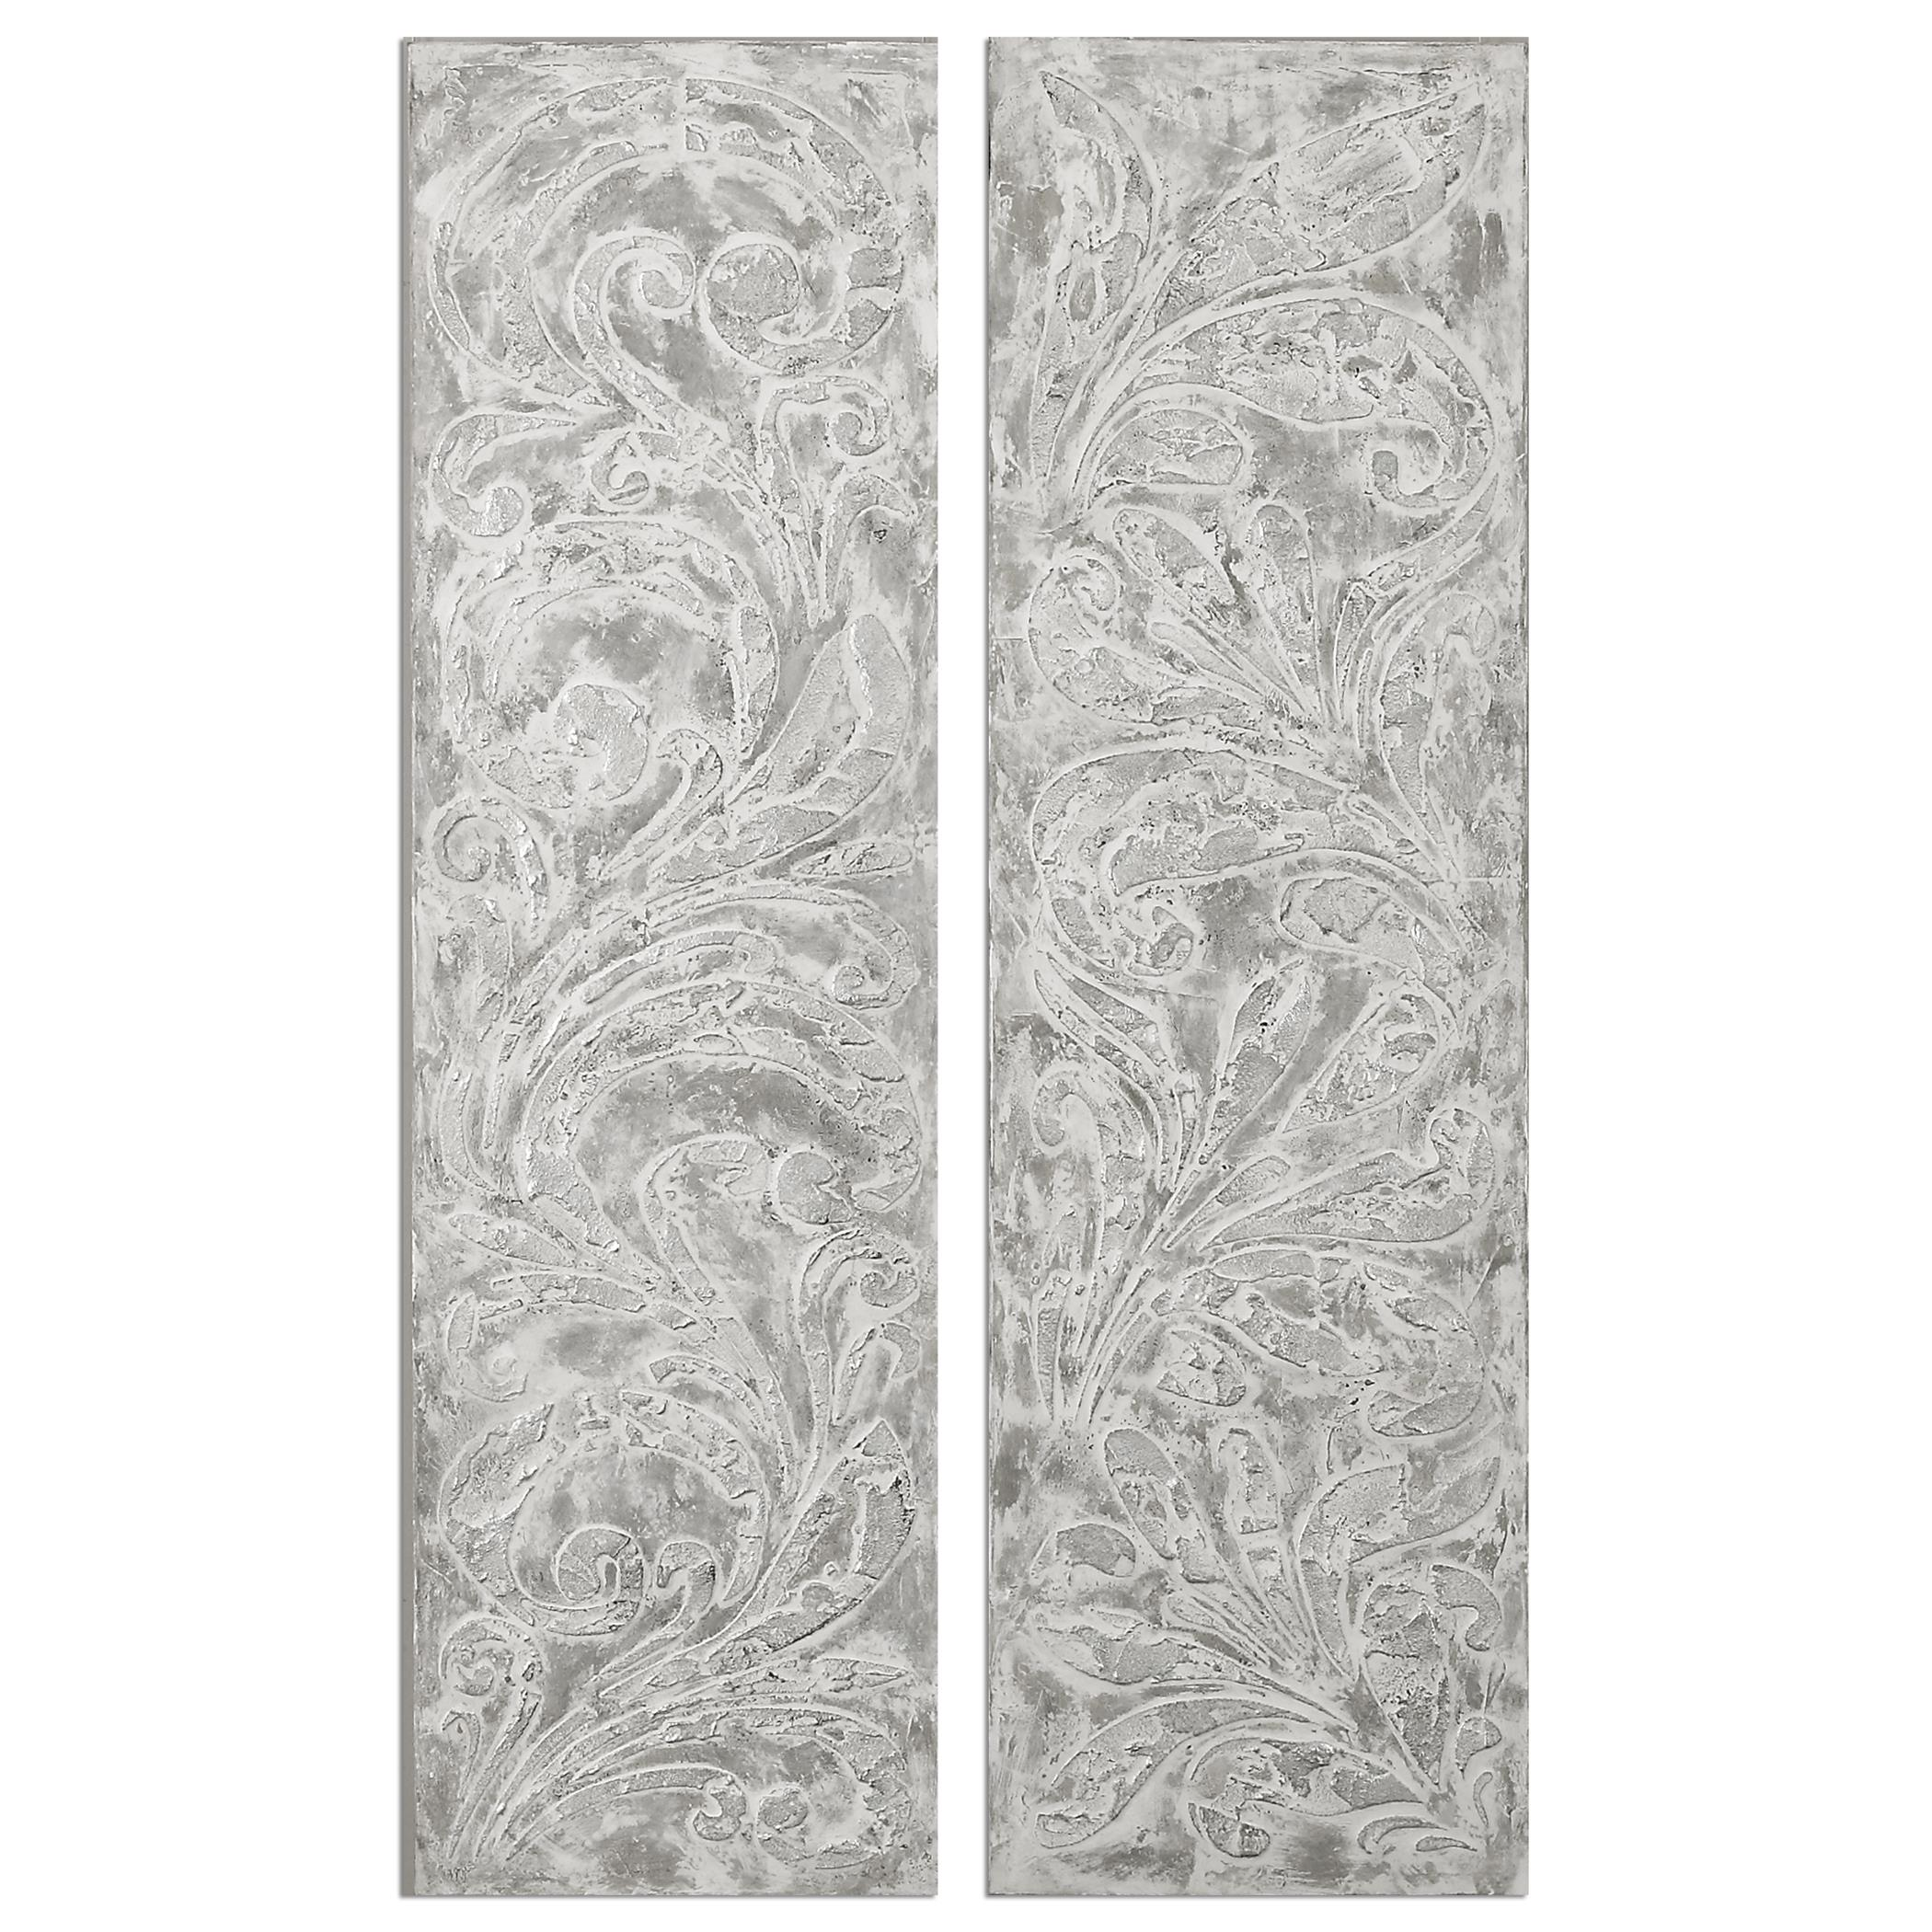 Uttermost Art Frost On The Window Wall Art, S/2 - Item Number: 35500